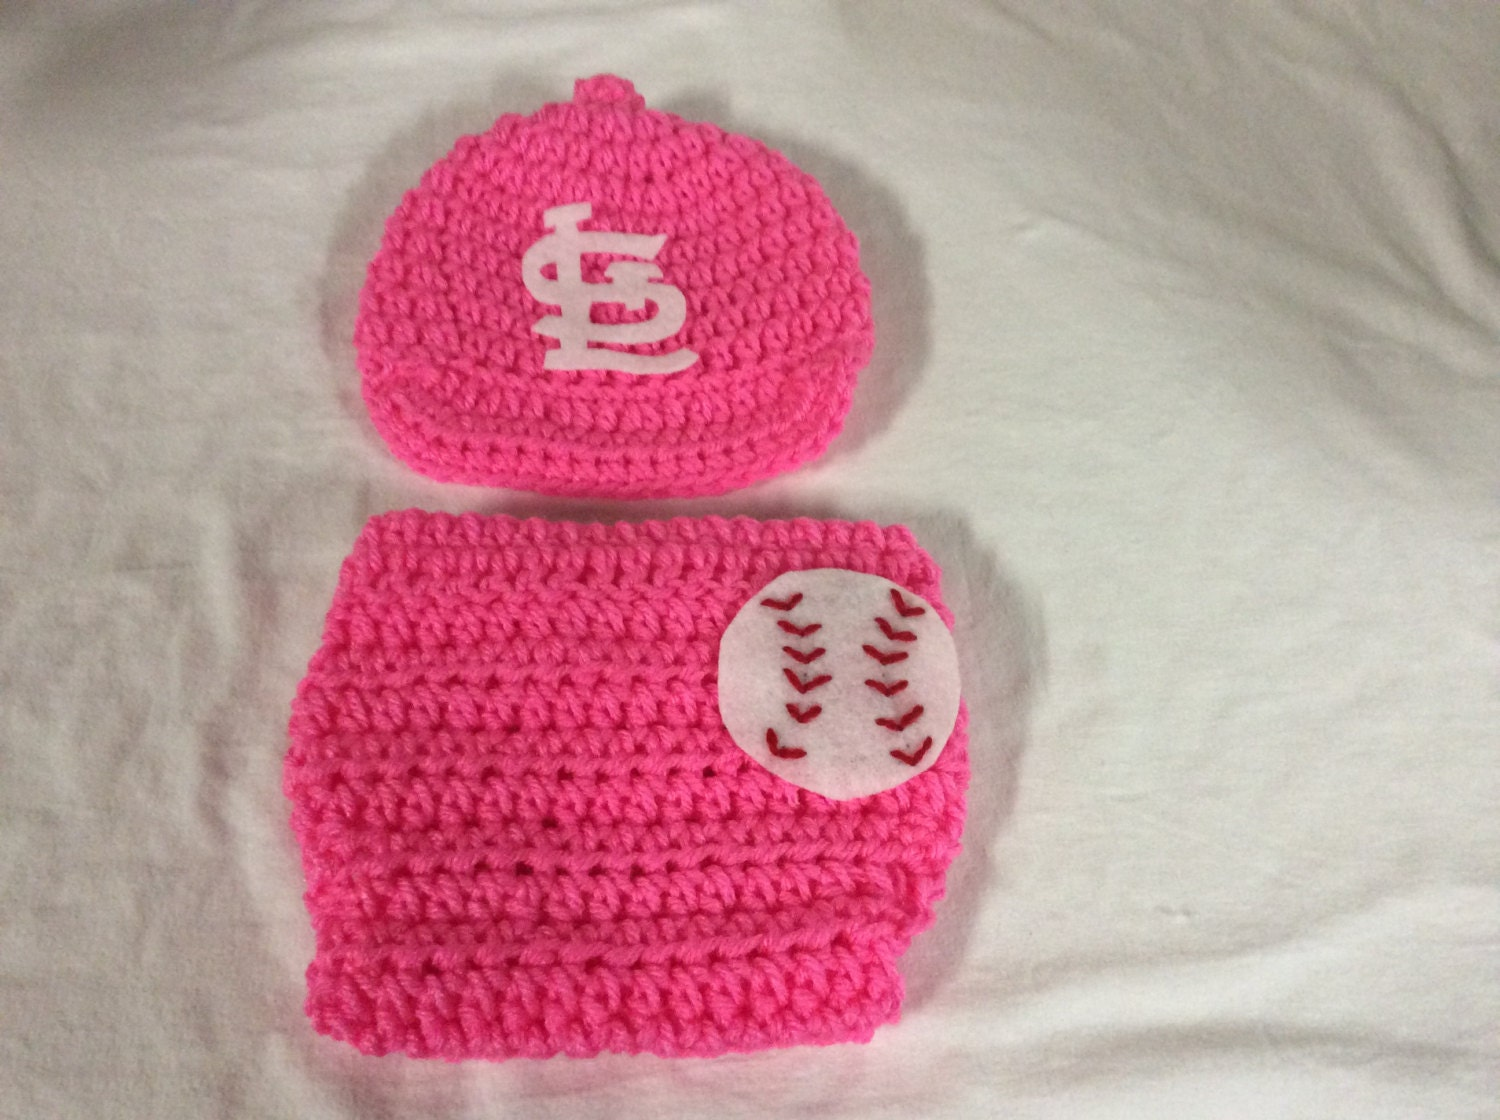 St Louis Cardinals Pink Baby Crochet Baseball Cap And Etsy